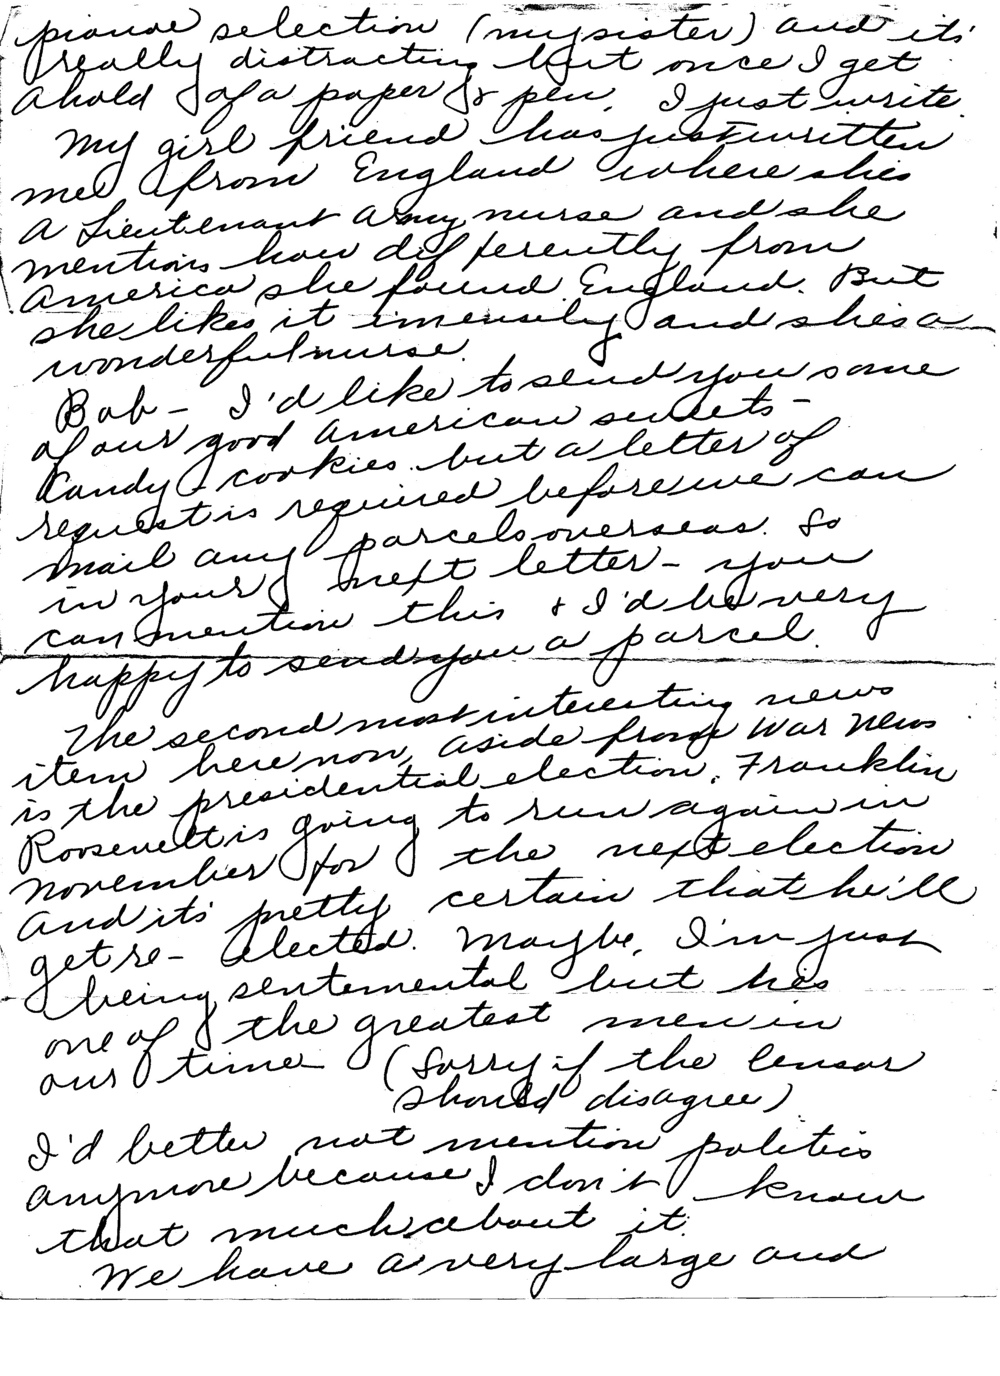 (Letter 1, Ruth to Bob, July 24, 1944, page 4 of 8)